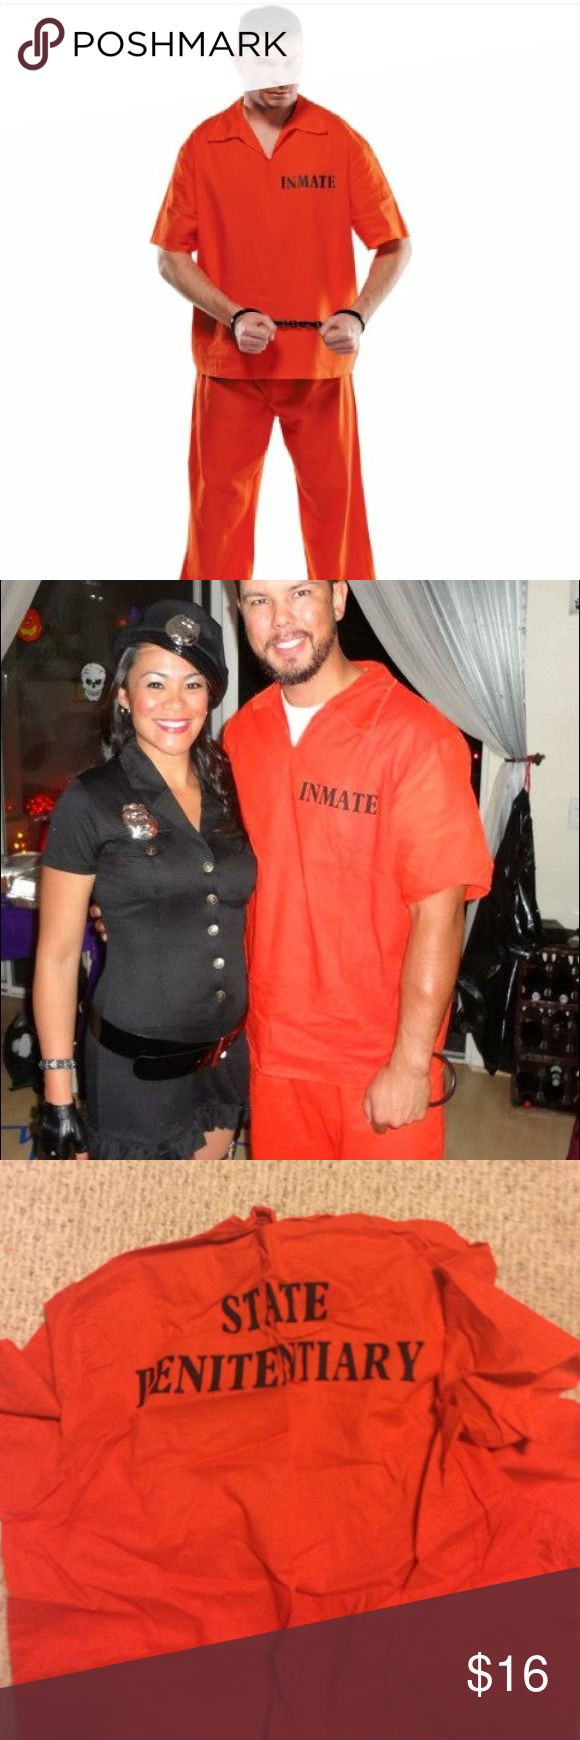 Best ideas about DIY Prisoner Costume . Save or Pin Best 25 Inmate costume ideas on Pinterest Now.